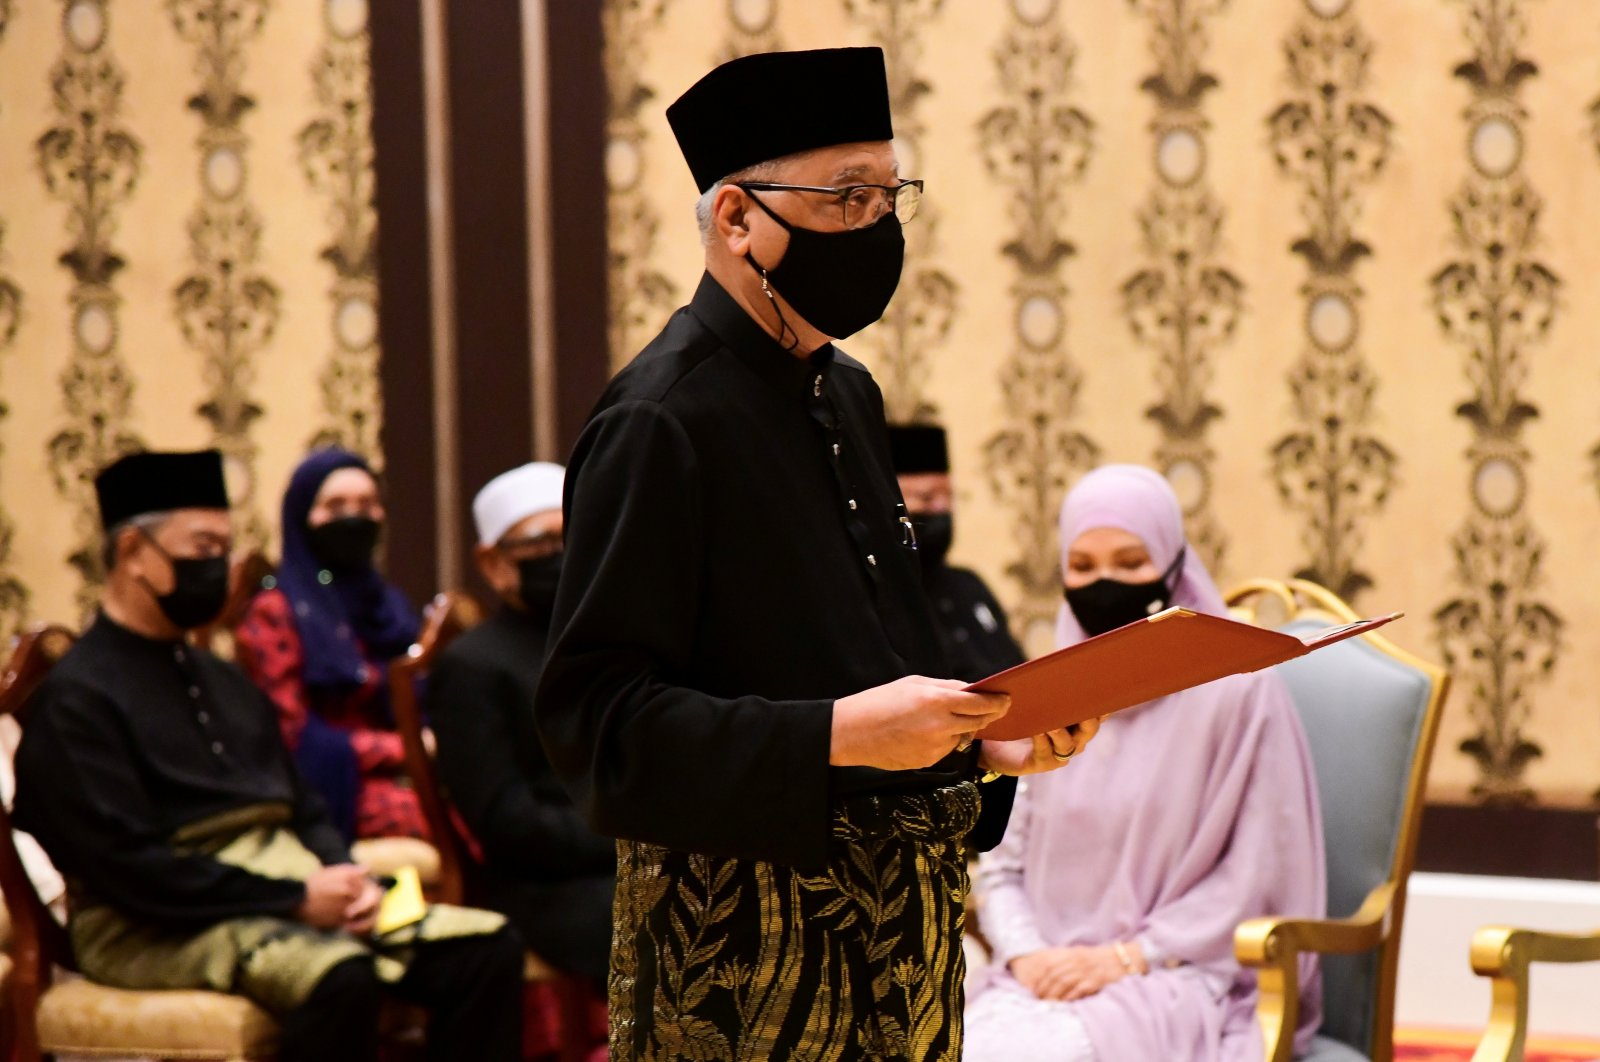 Prime Minister Ismail Sabri Yaakob, Malaysia's new premier, takes the oath of office during his inauguration at National Palace in Kuala Lumpur, Malaysia, Aug. 21, 2021. (REUTERS Photo)